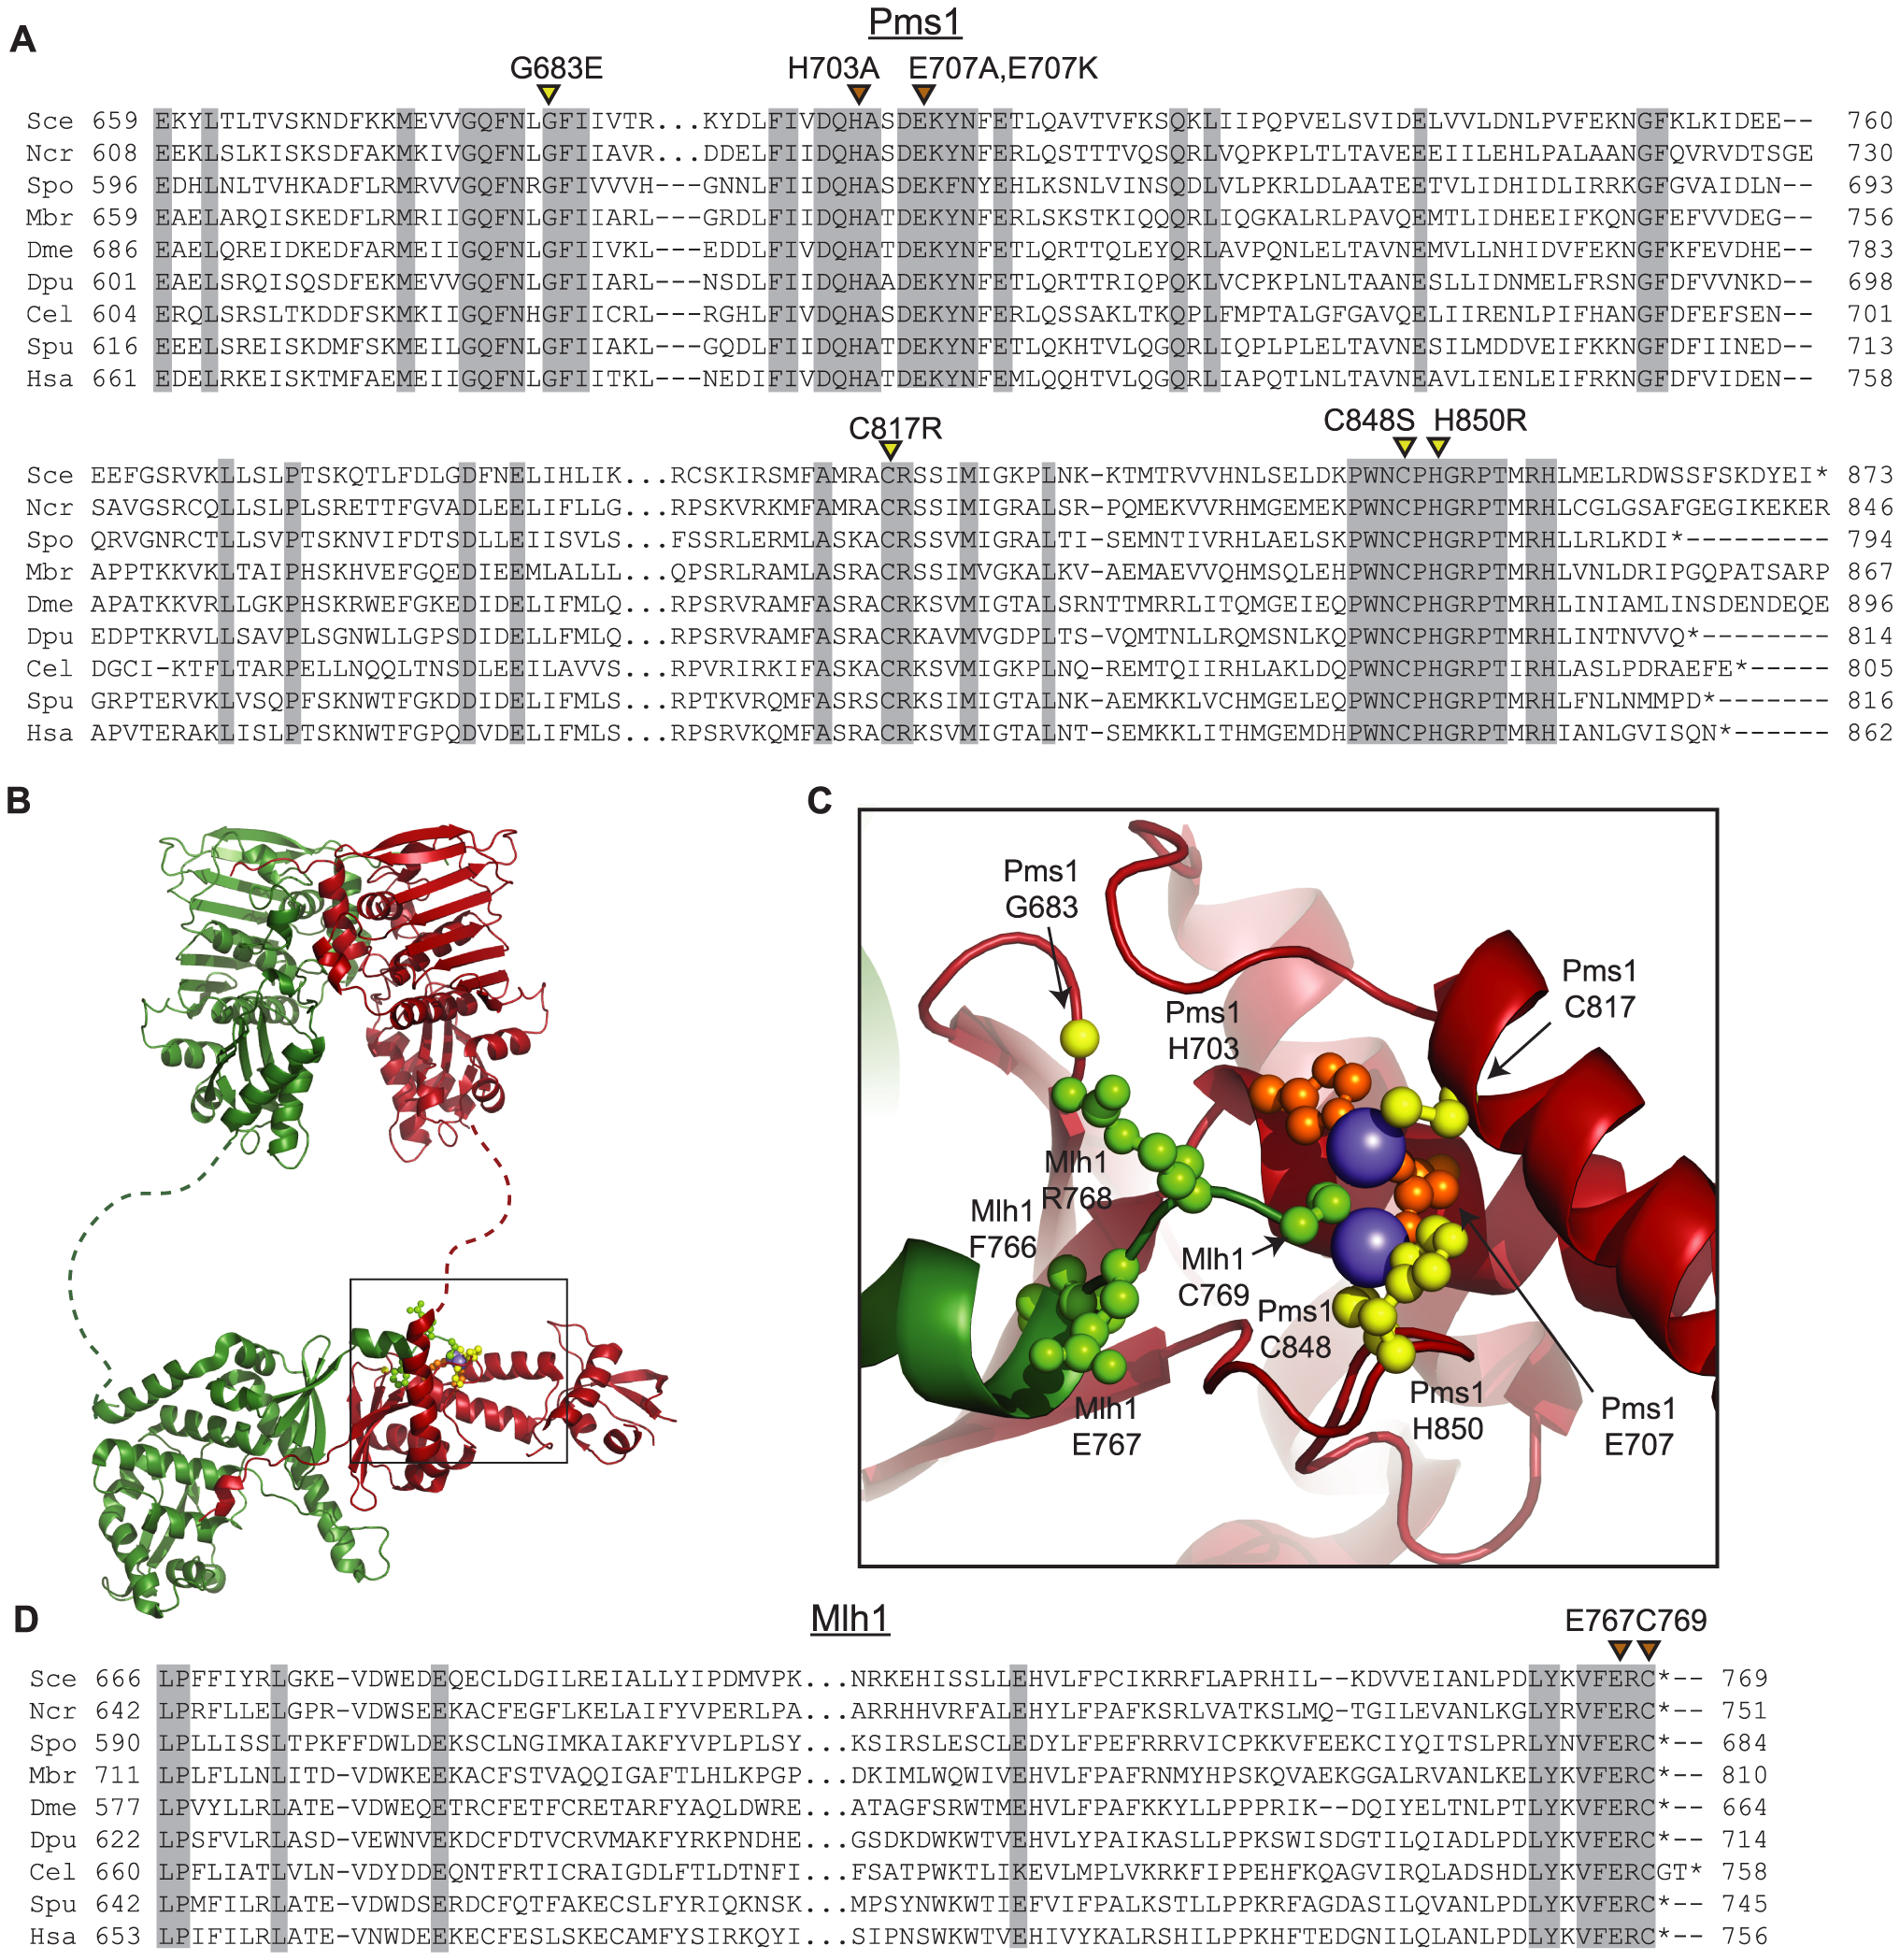 Conserved amino acid residues comprise the Mlh1-Pms1 endonuclease active site.